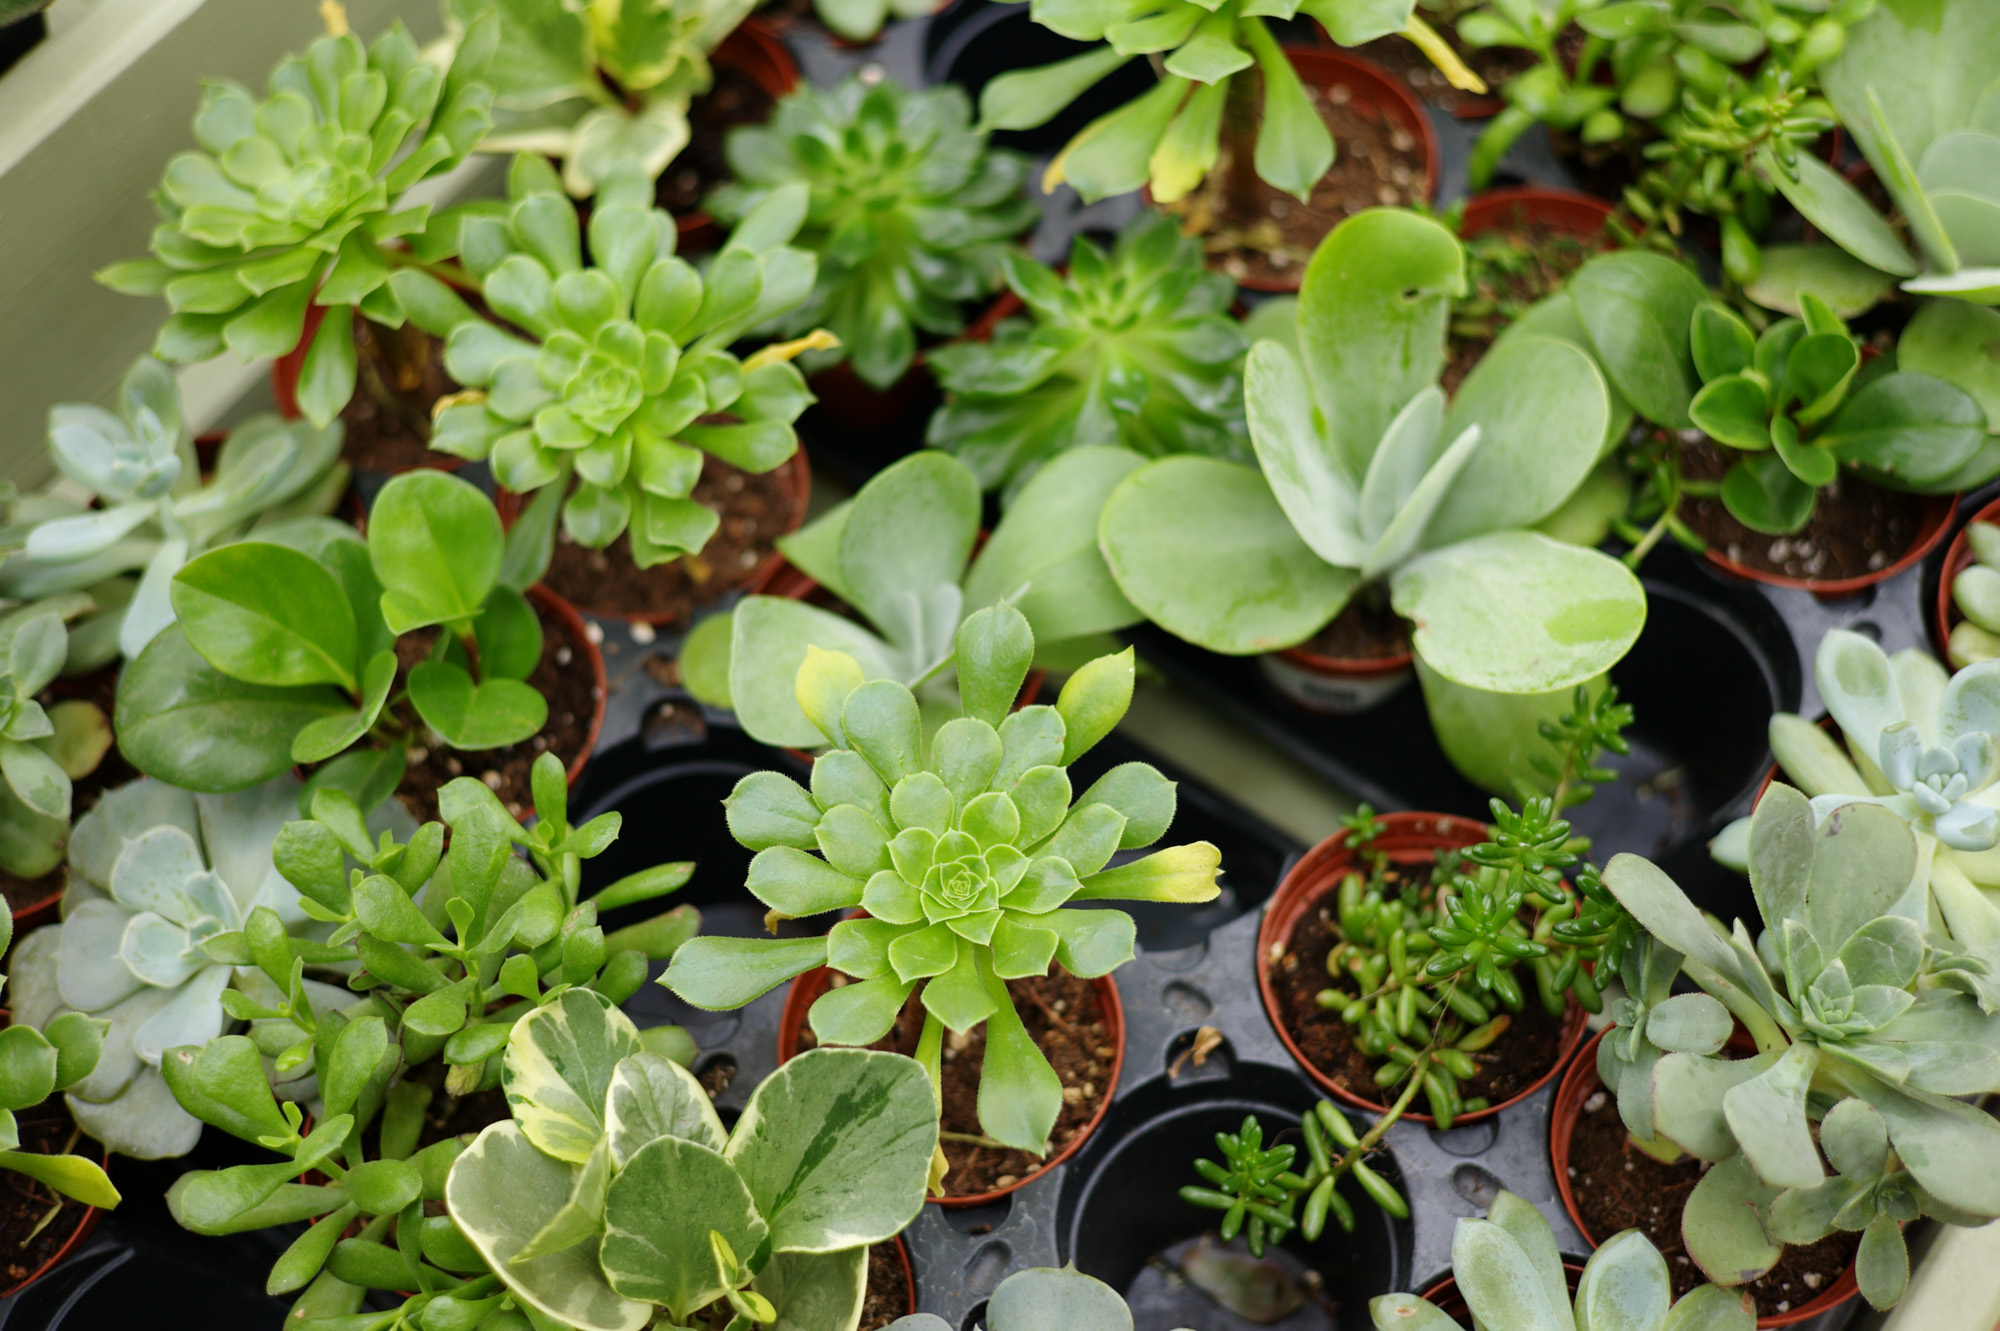 Succulent Houseplants for Sale in Maryland - Patuxent Nursery